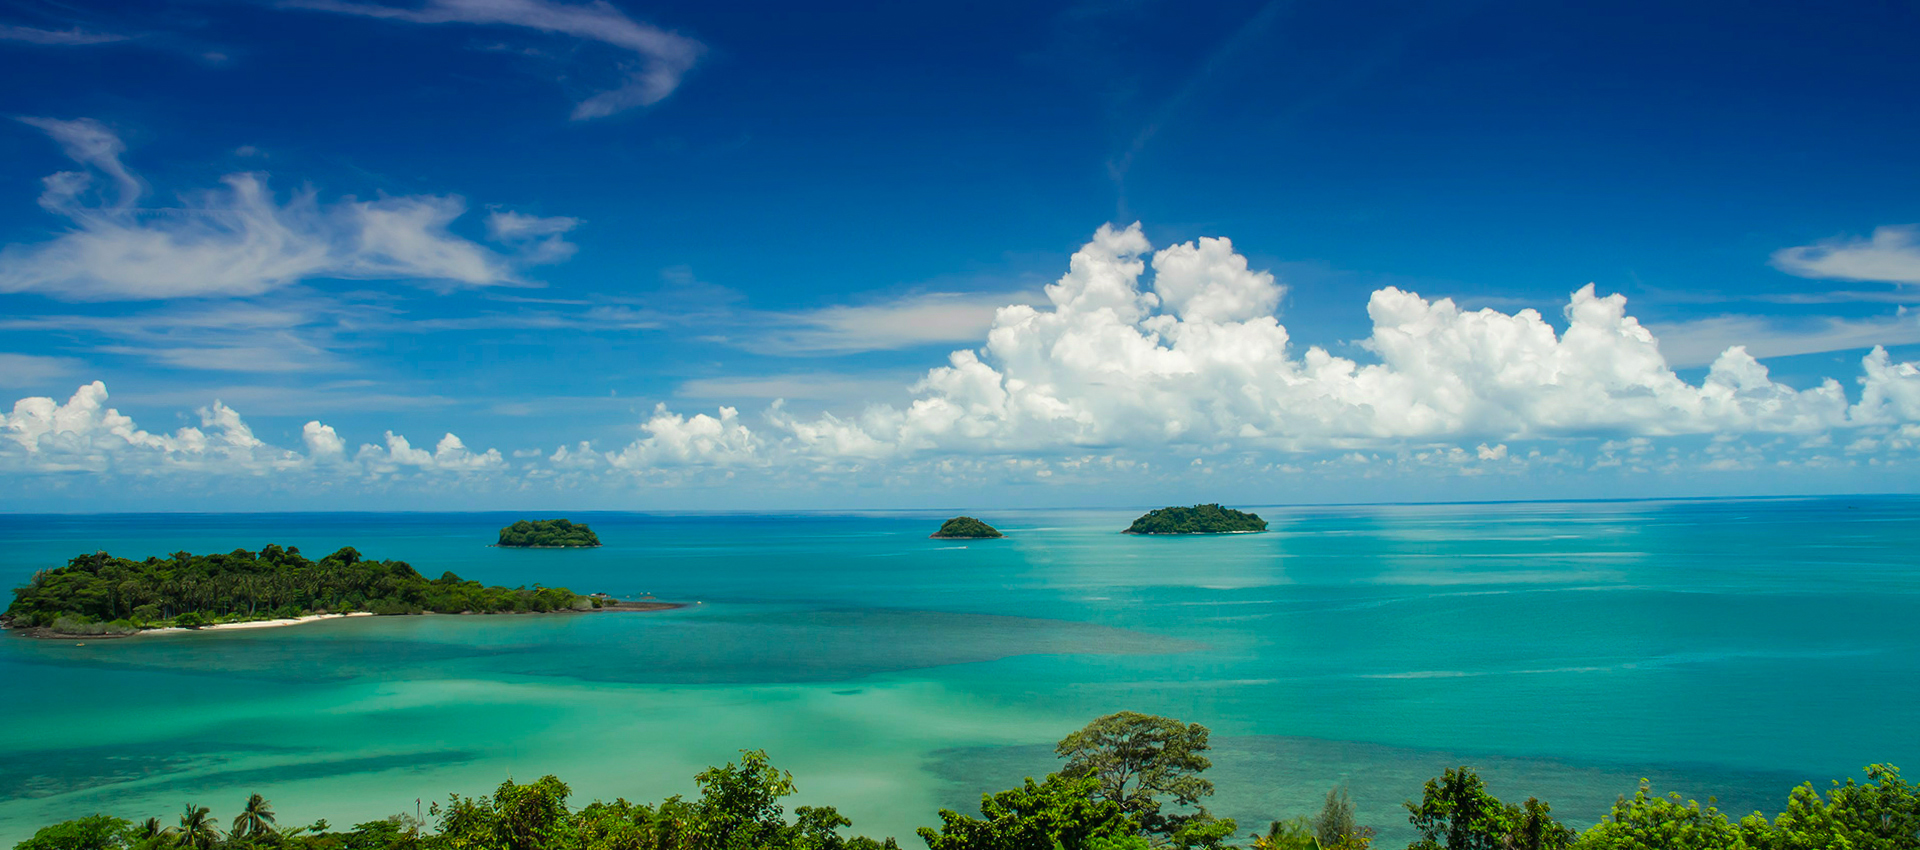 kohchang-overview